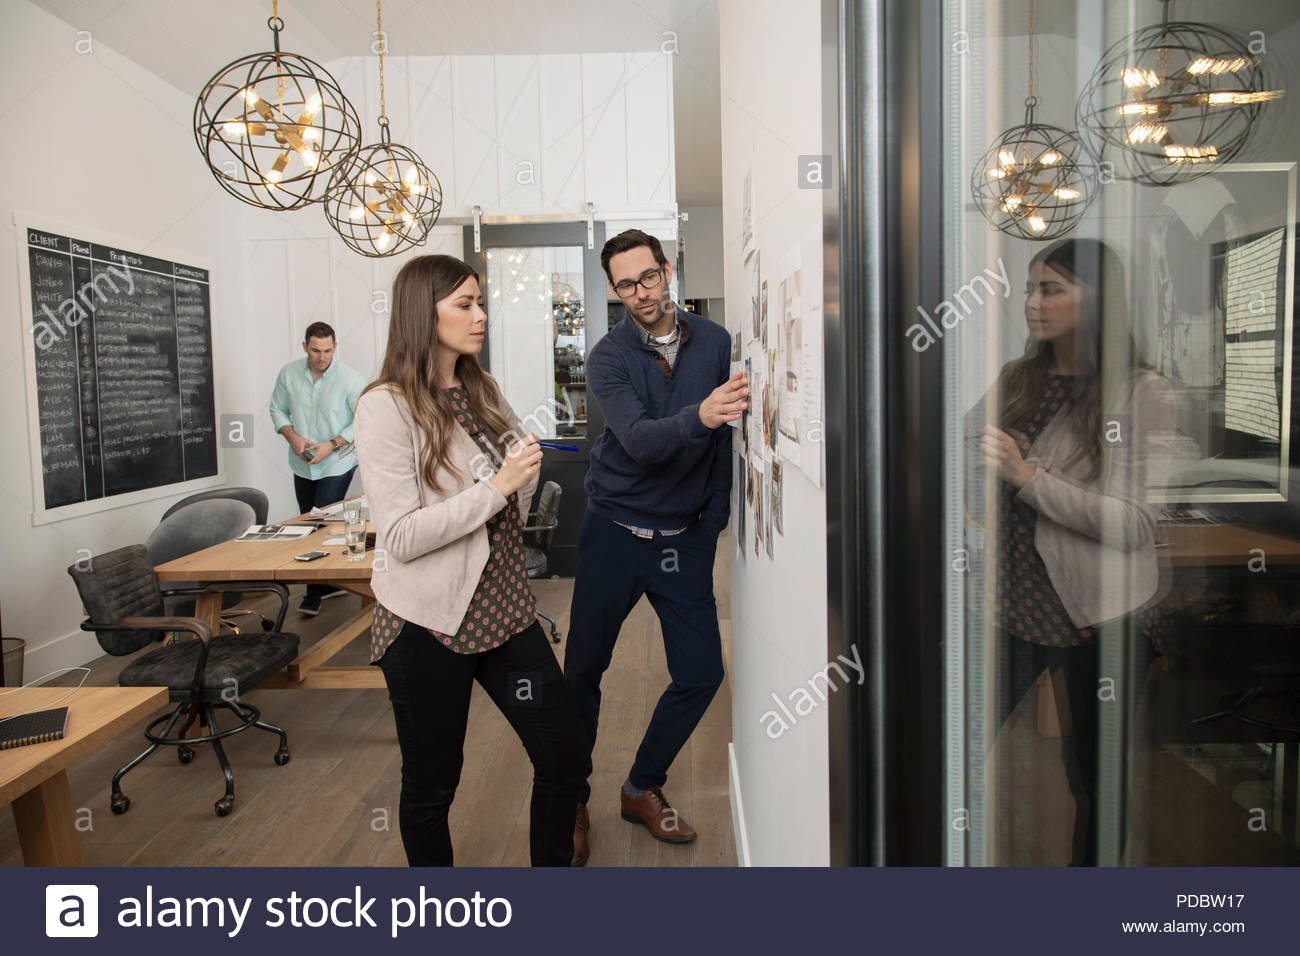 Home builder architect and designer planning at wall in office - Stock Image